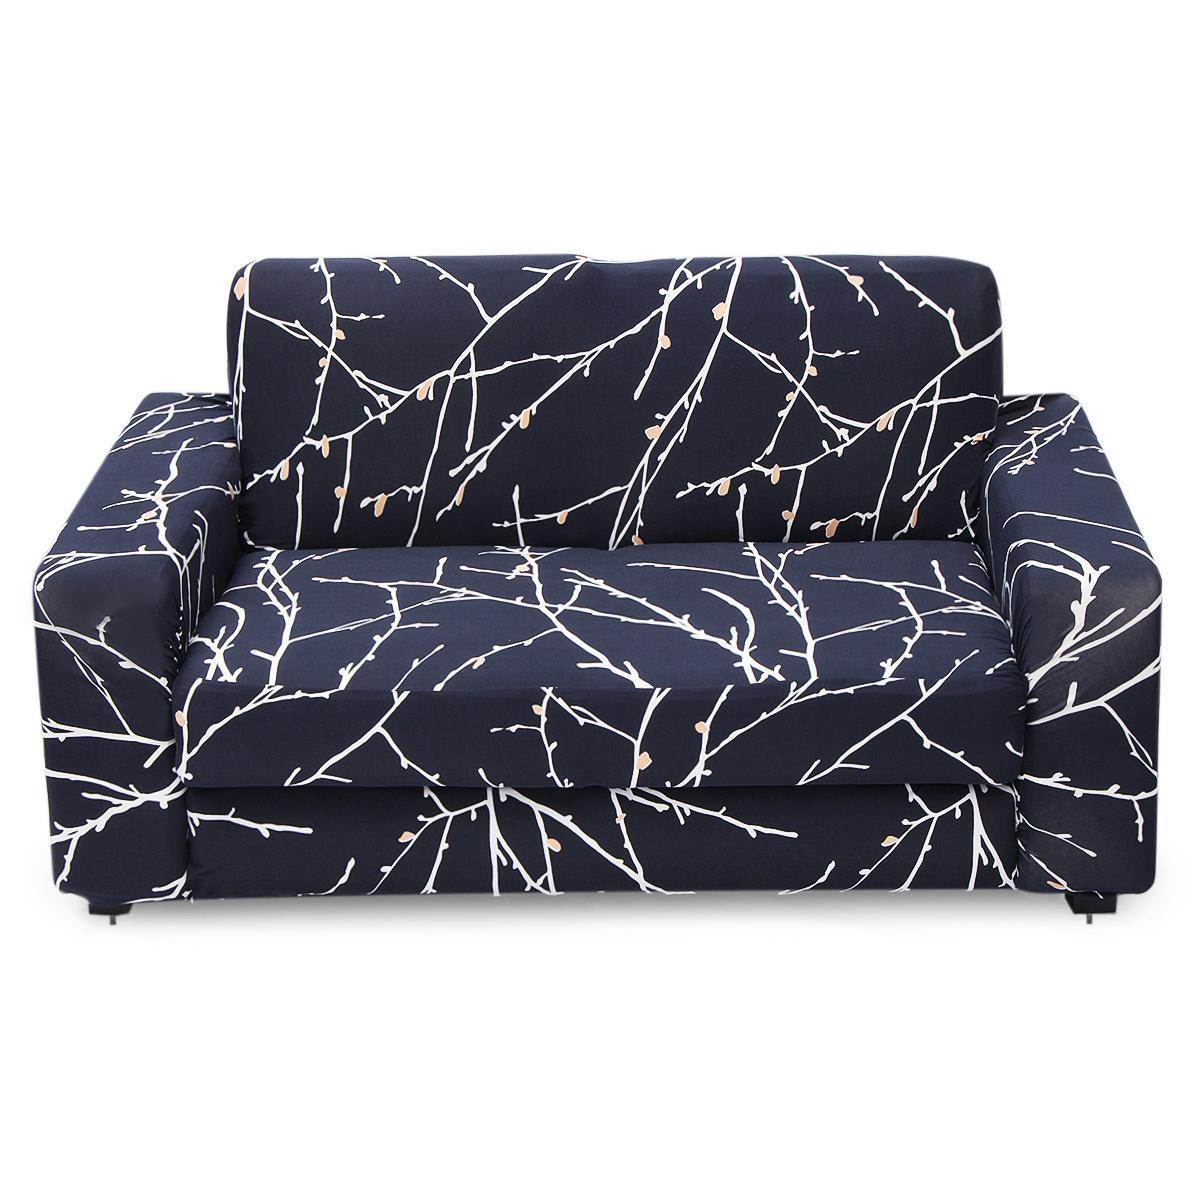 2 Seaters Elastic Sofa Cover Soft Stretch Slipcover Settee Protector Couch